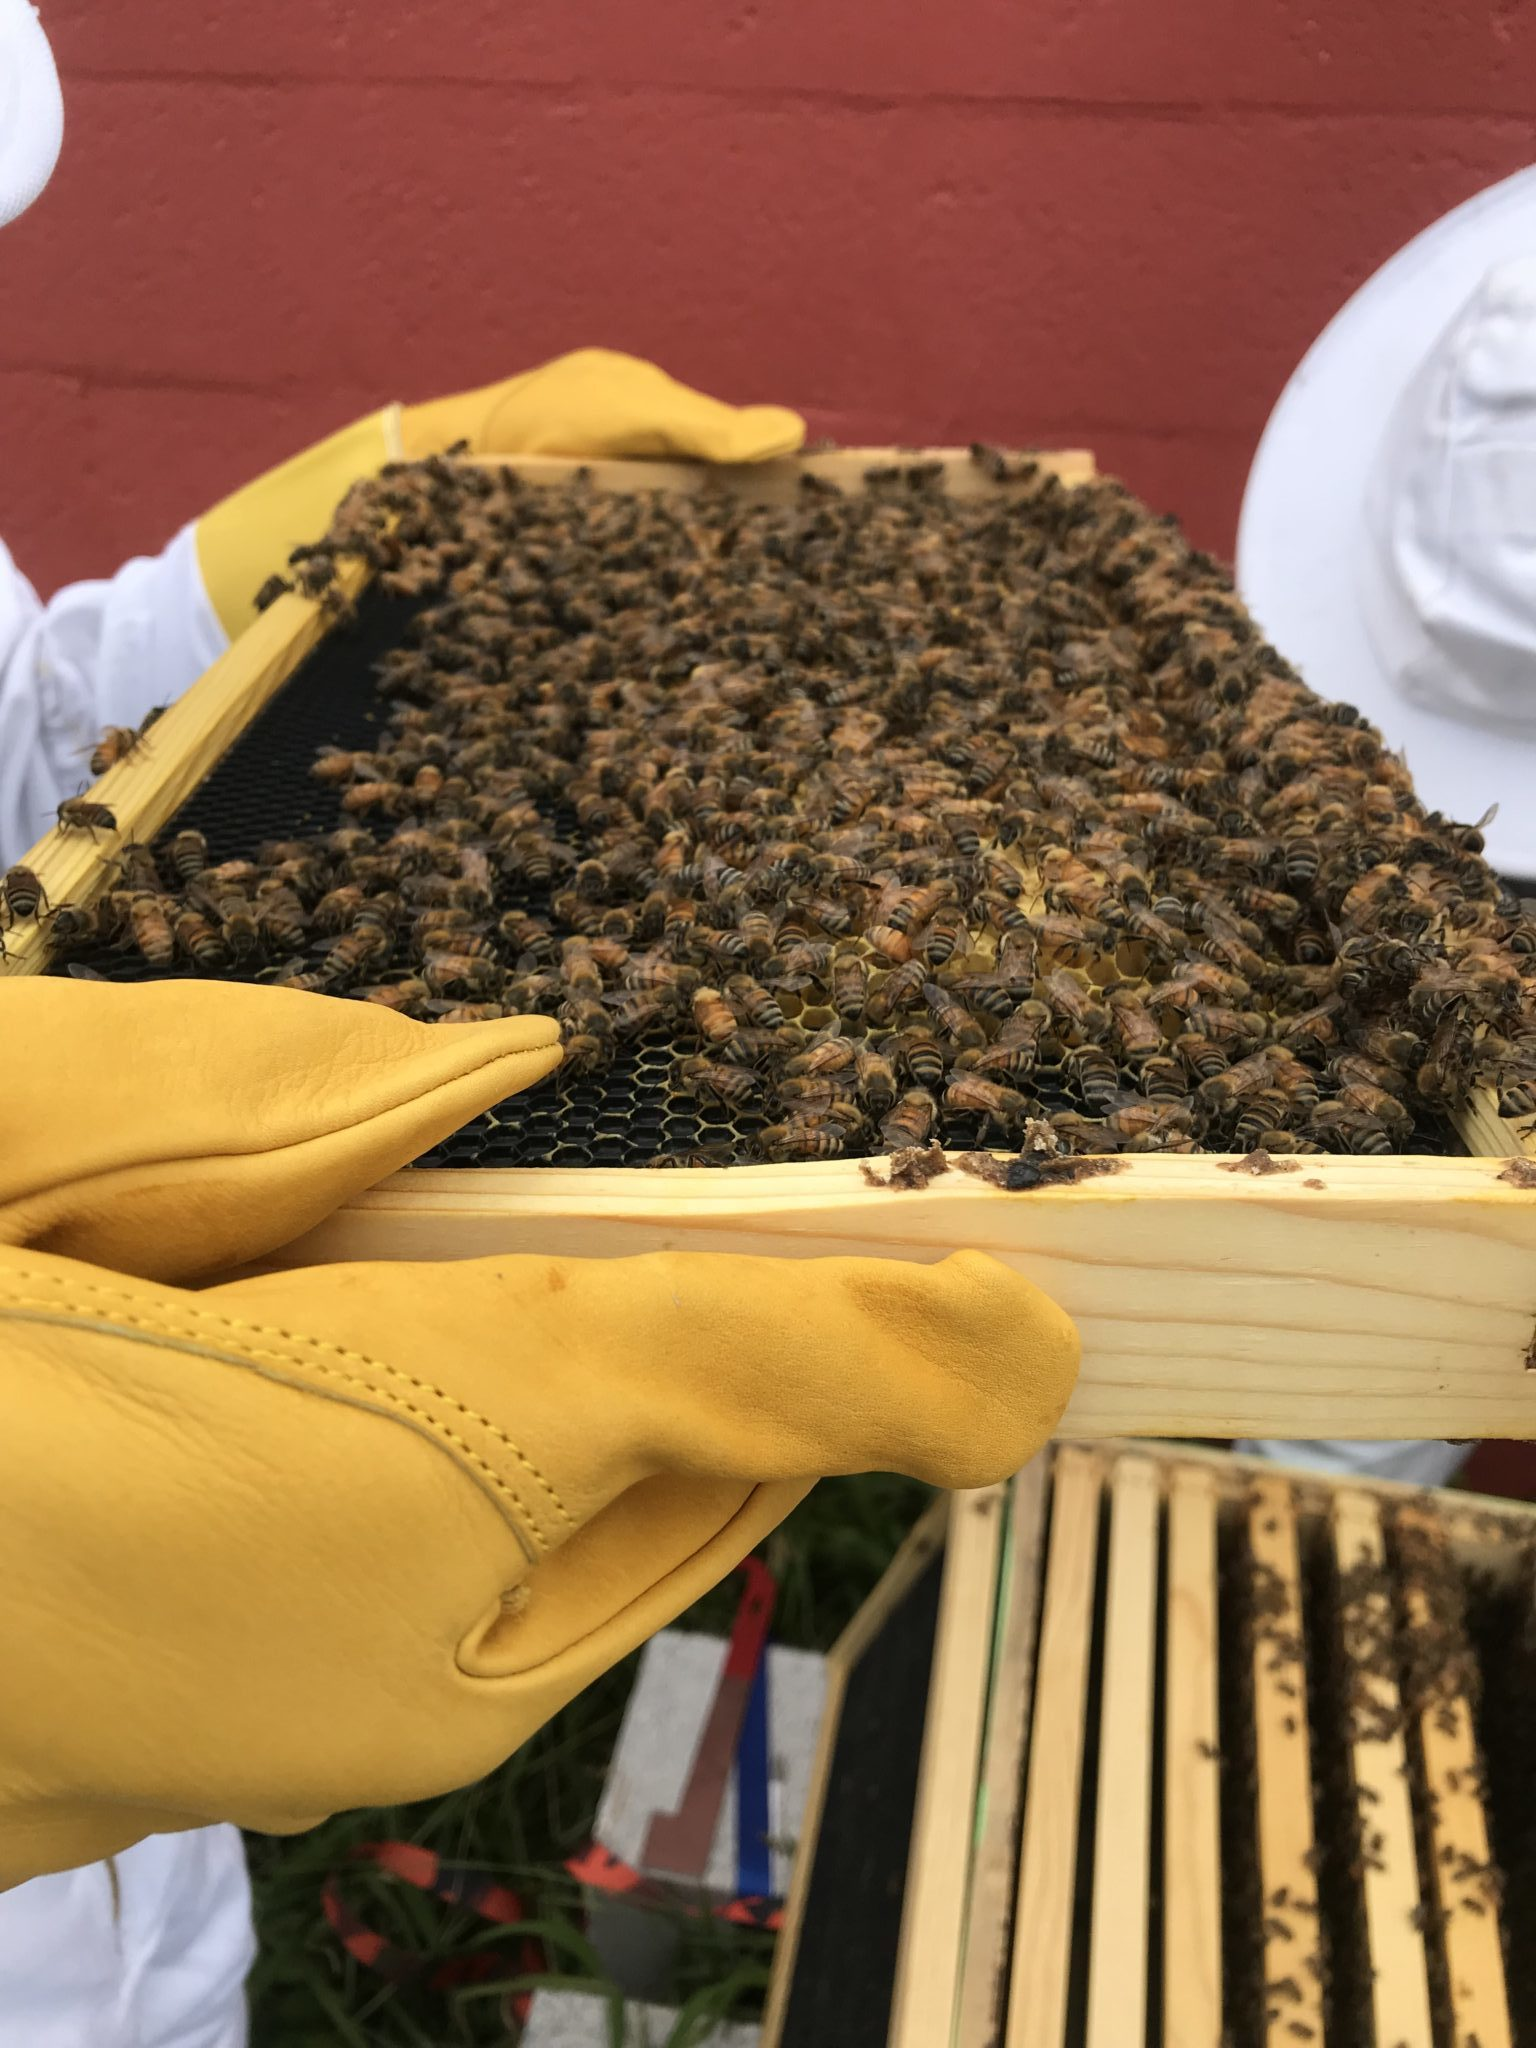 frame of bees with a yellow glove